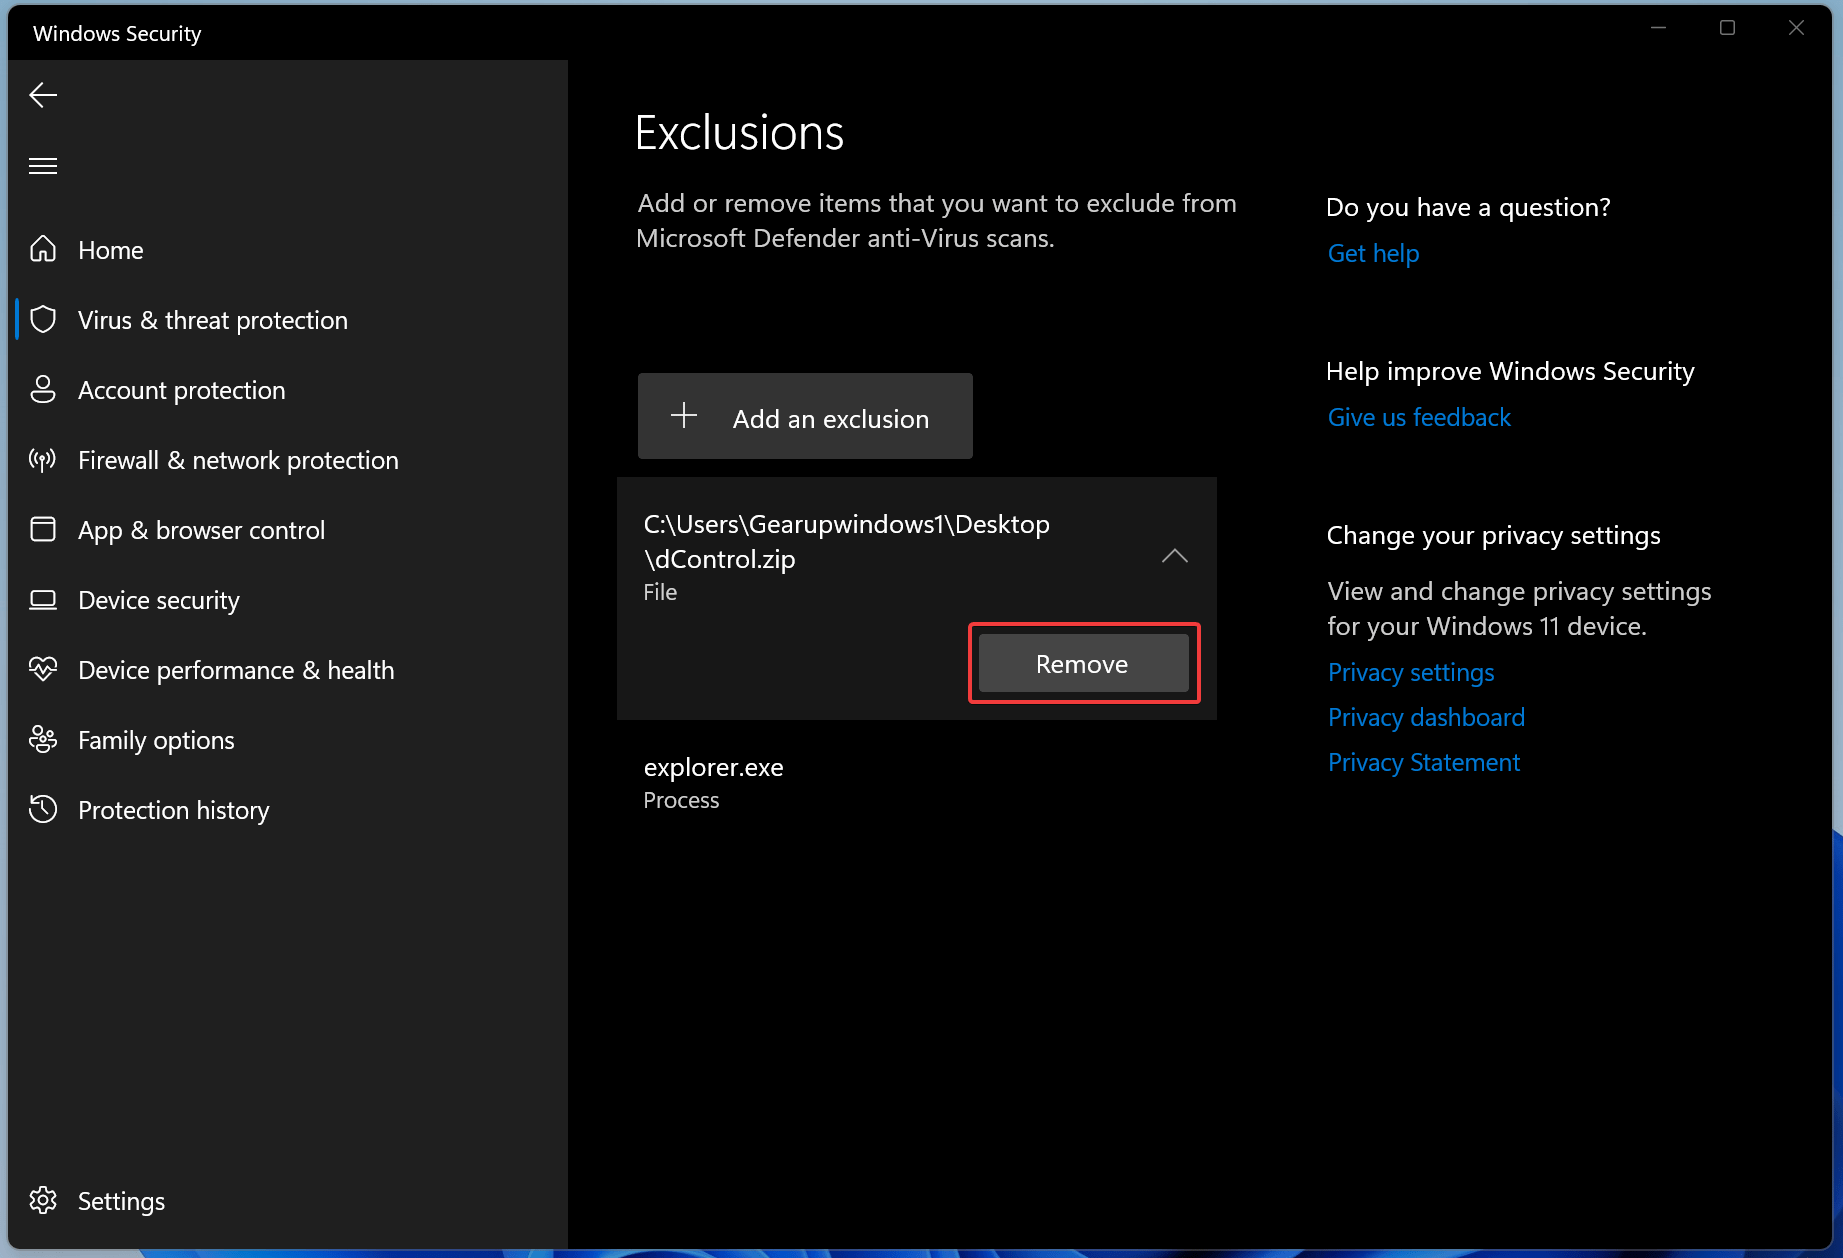 How to Add or Remove Exclusions for Windows Defender in Windows 11?